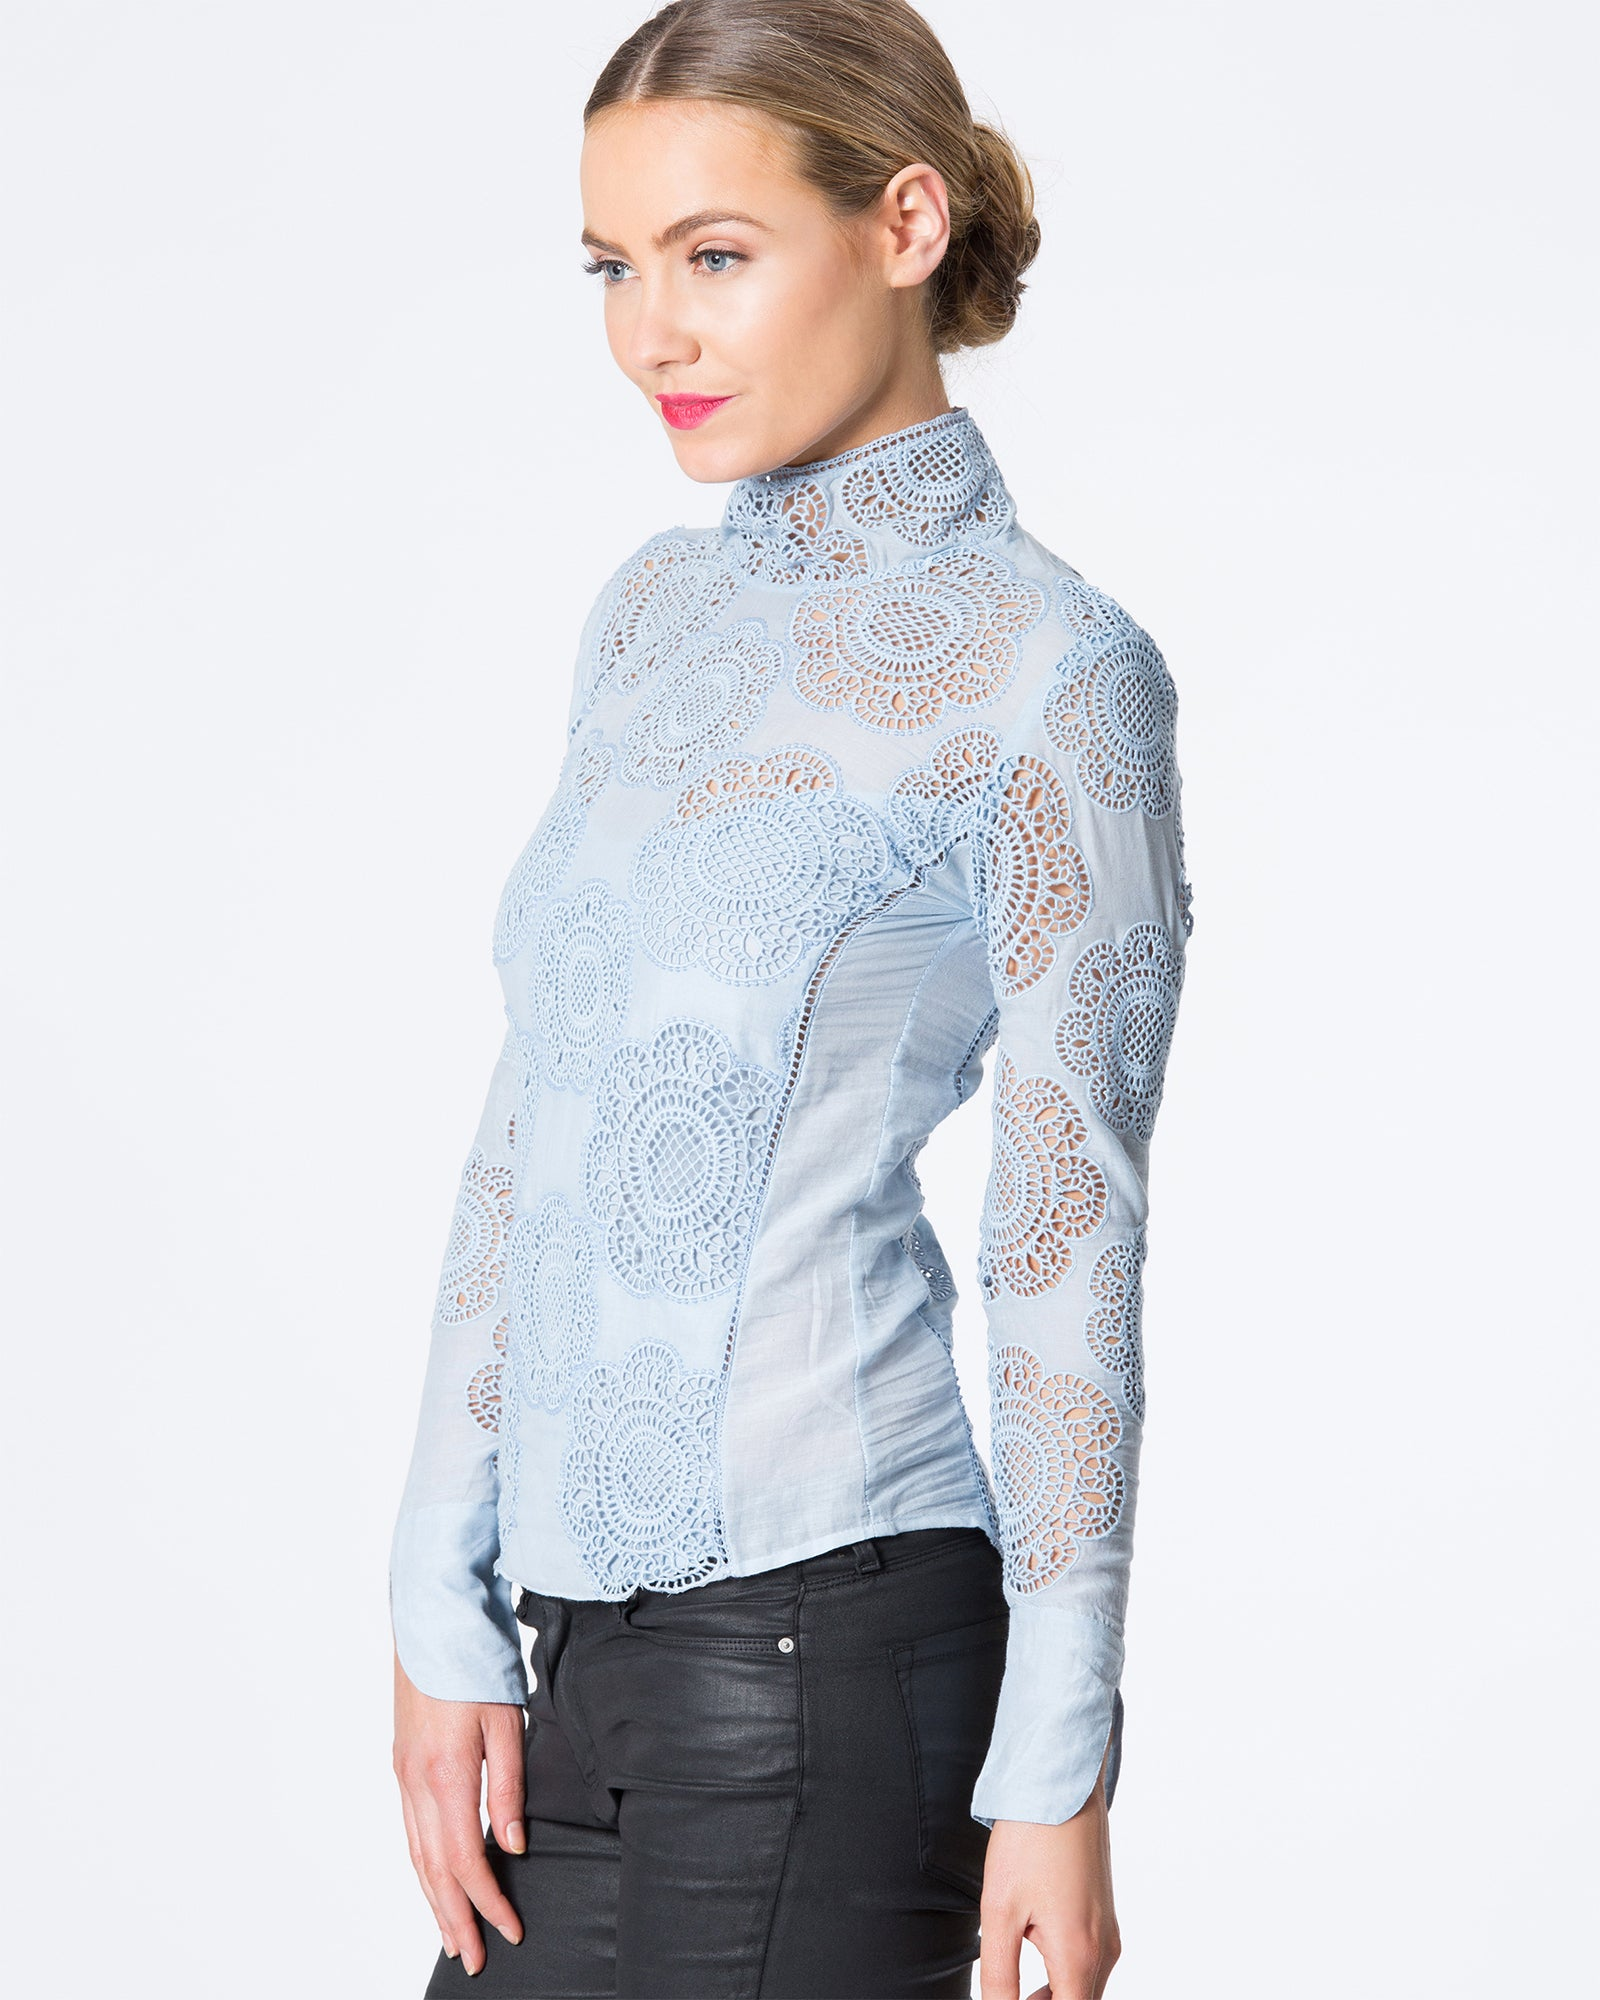 HIGH NECK LONG SLEEVED LACE TOP